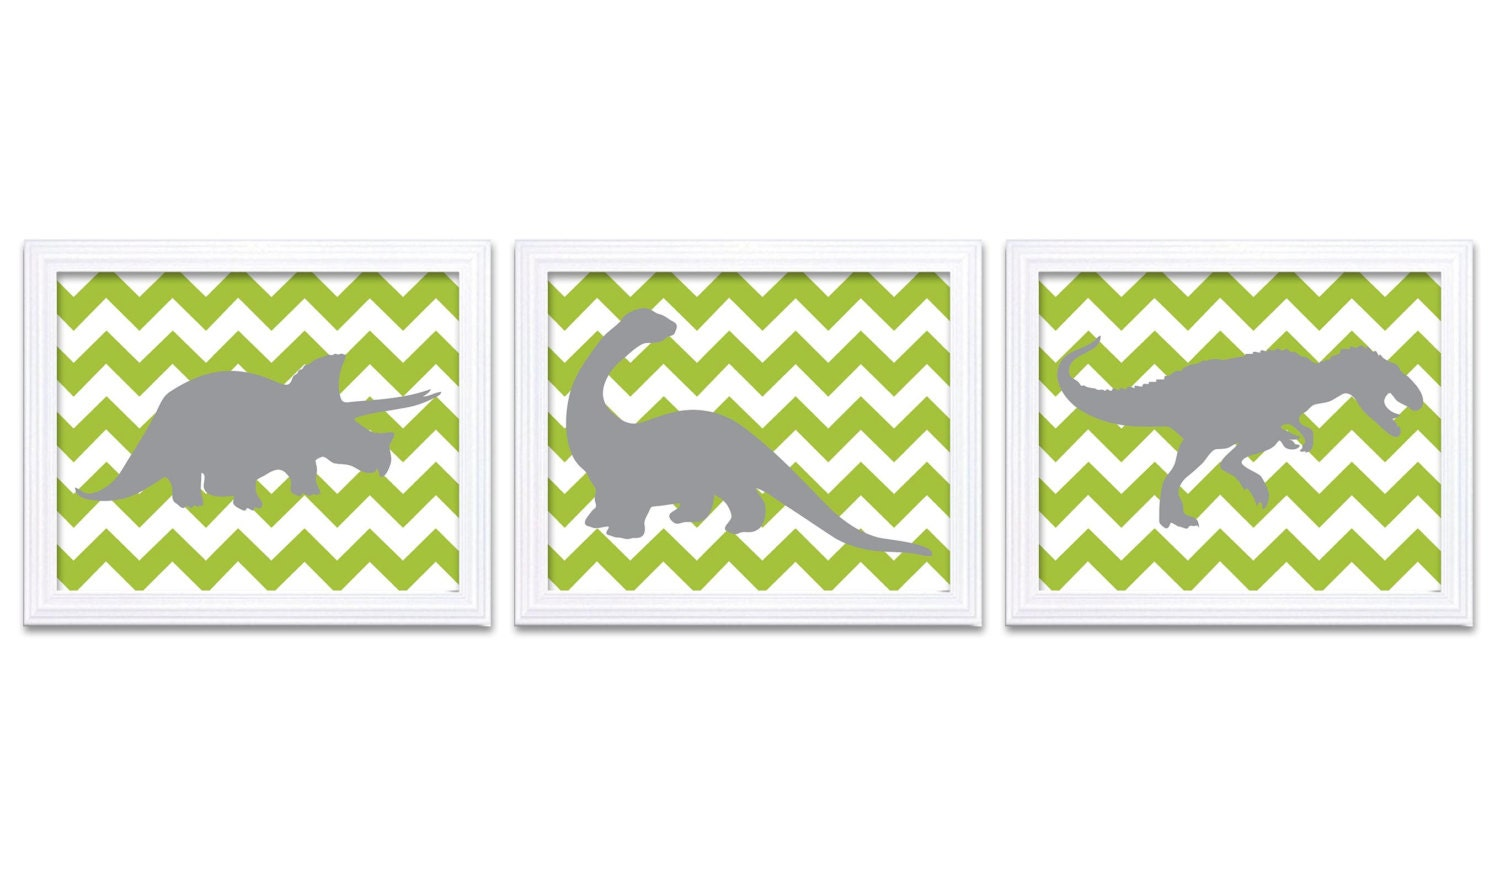 Dinosaur Nursery Art Dinosaurs Set of 3 Prints Grey Lime Green Chevron Tyrannosaurus Rex Triceratops